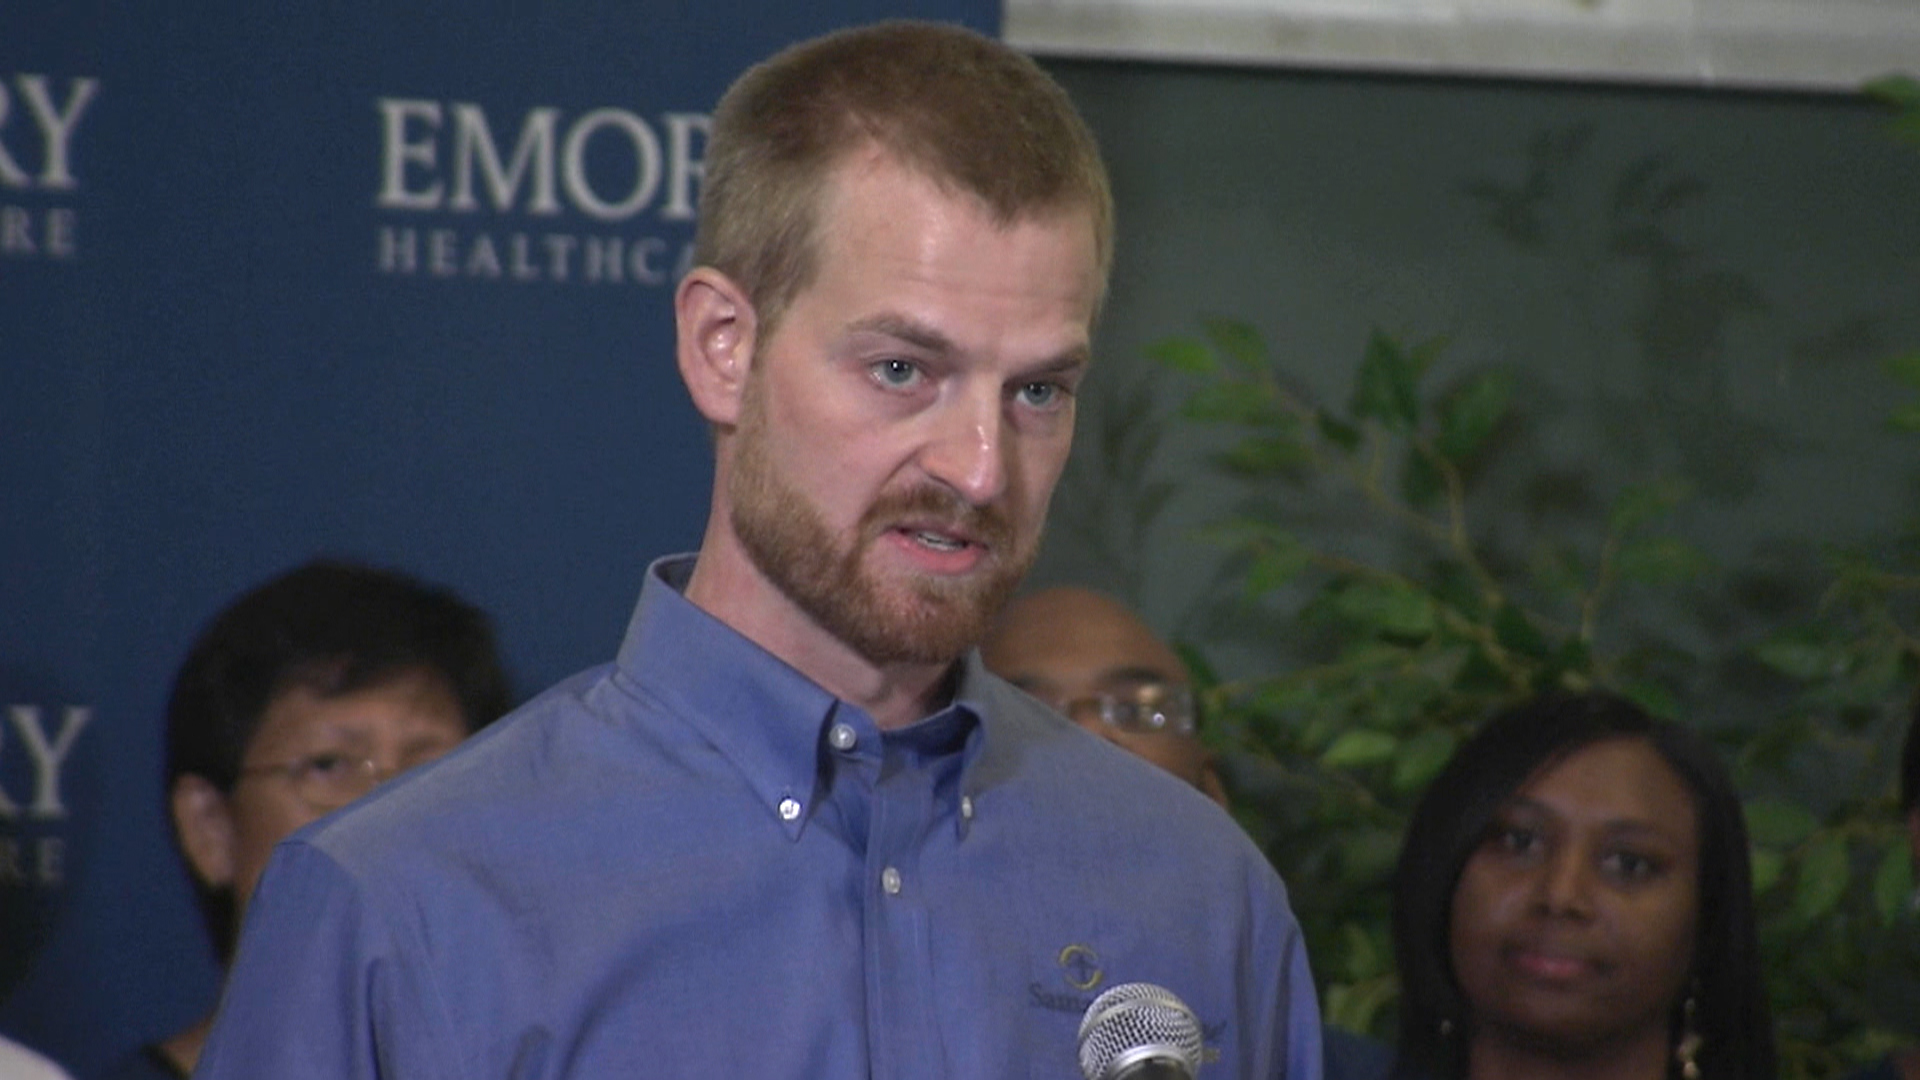 Another American Doctor Infected With Ebola, Charity Says